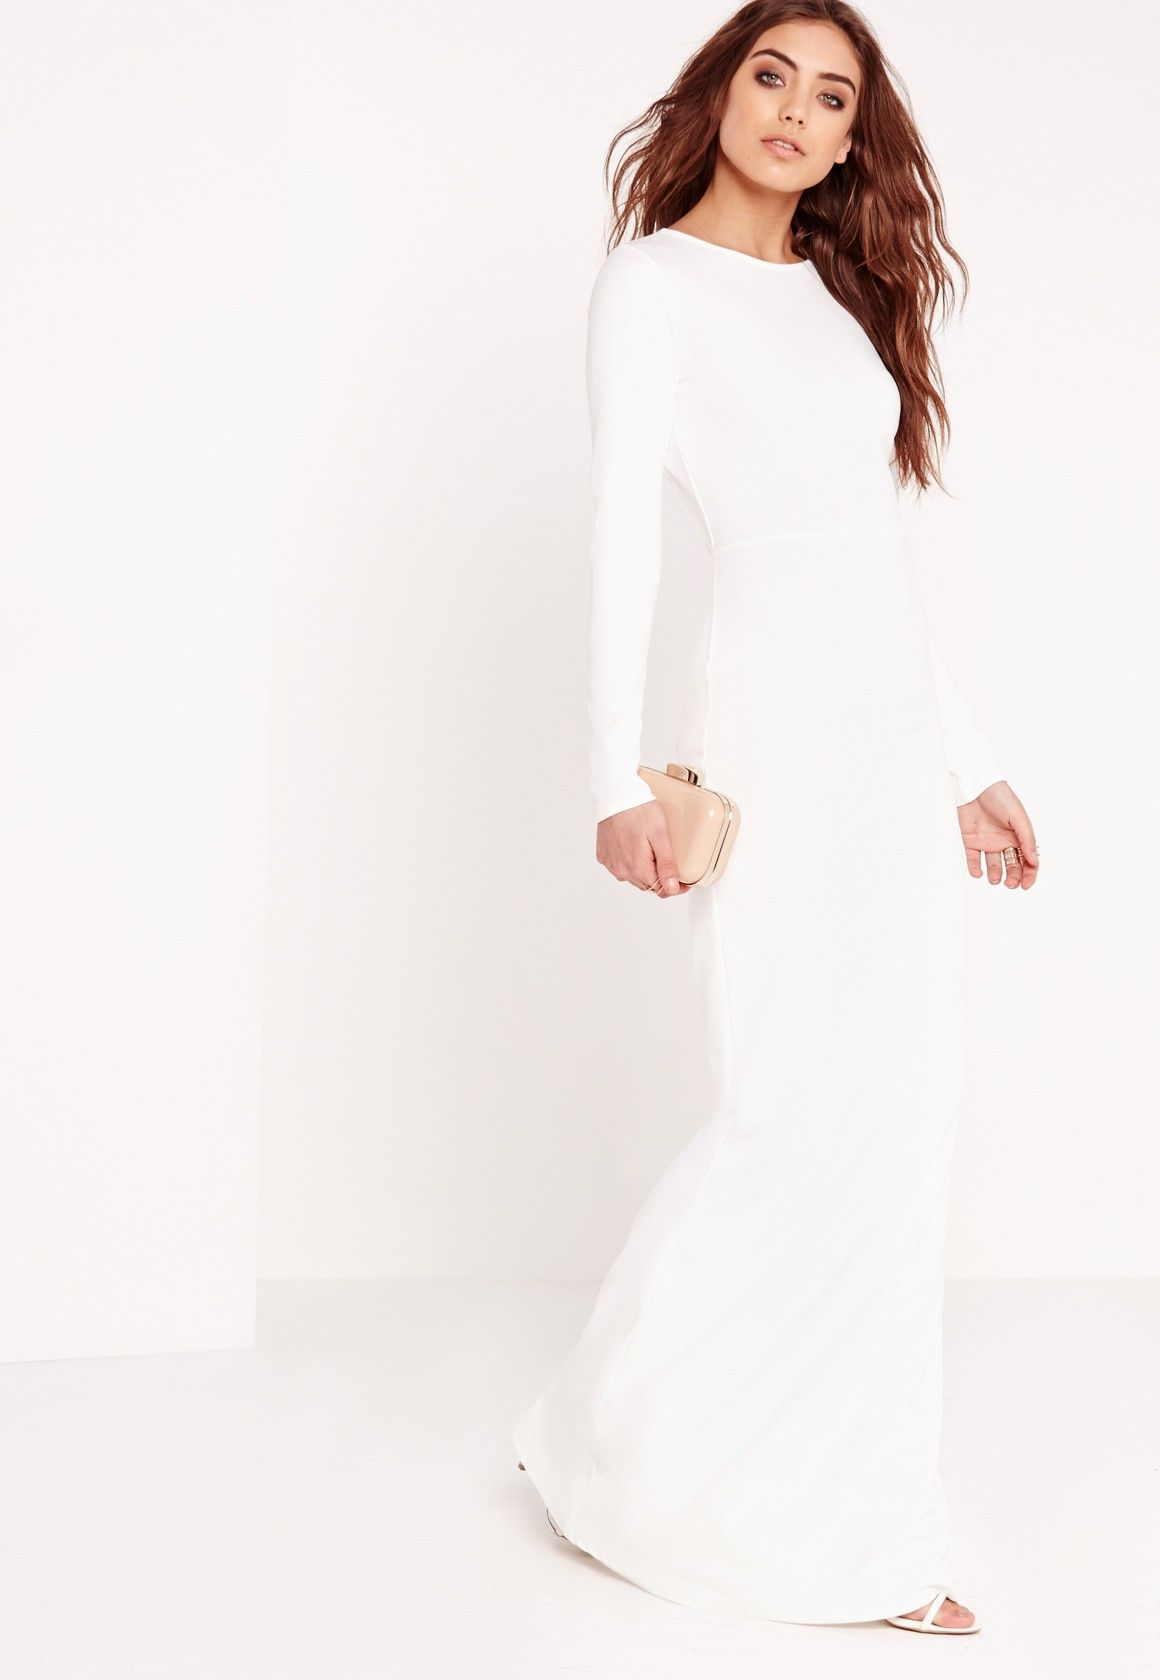 Long Sleeve White Maxi Dresses